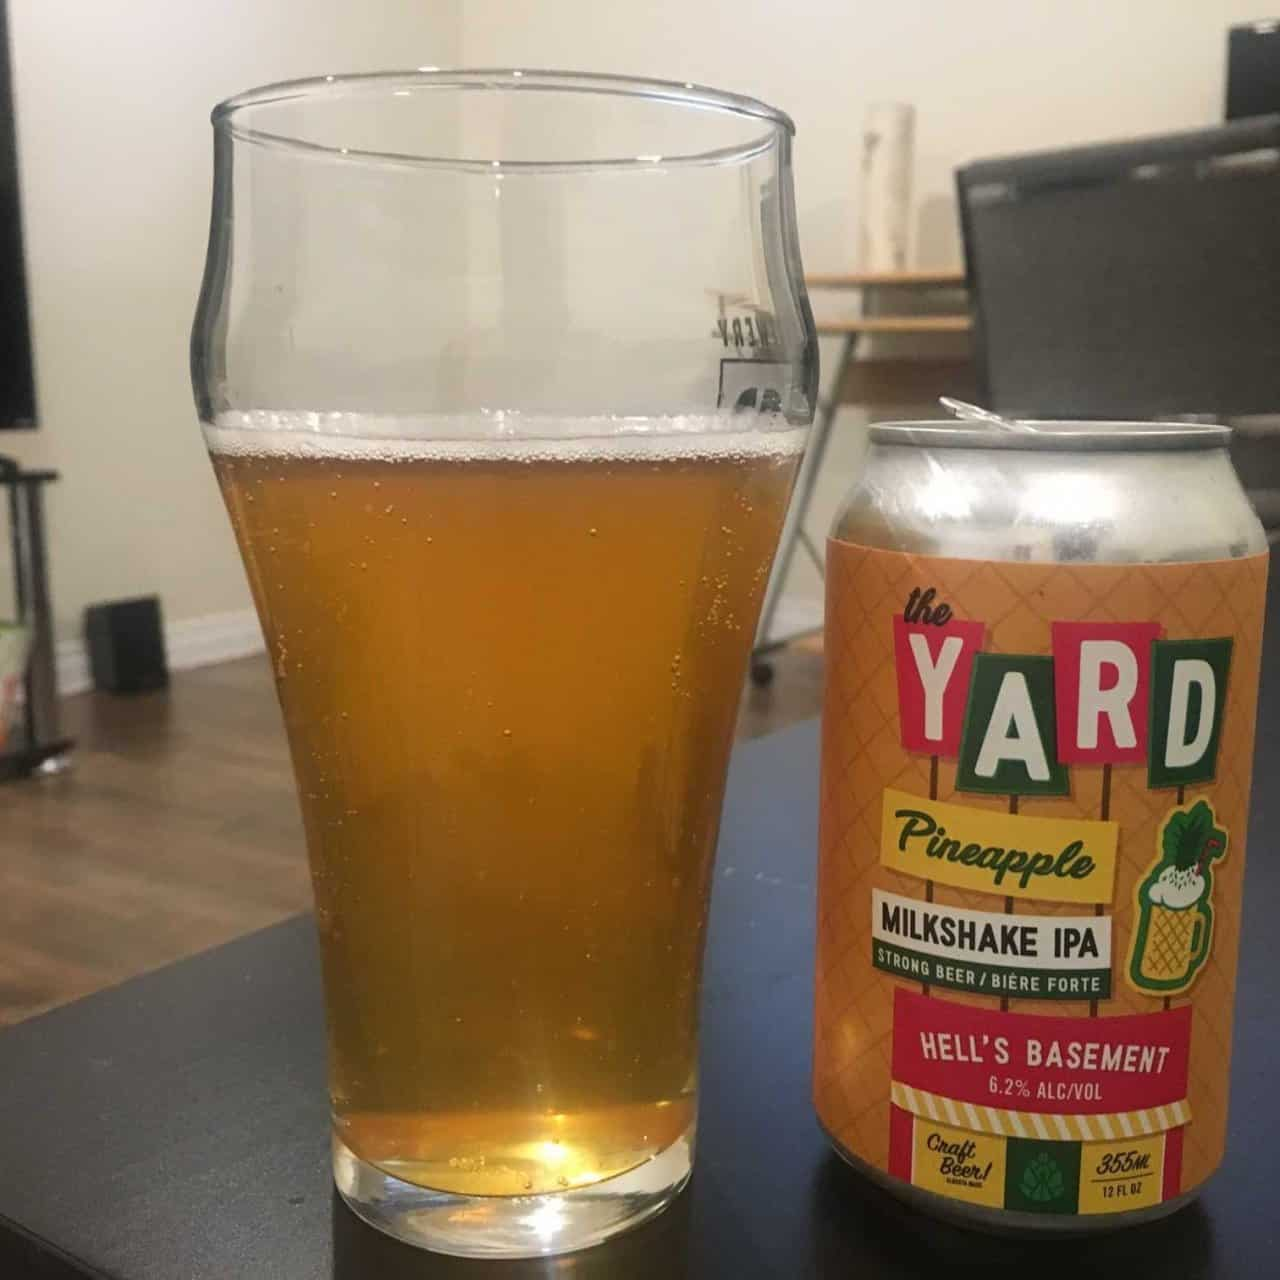 The Yard Milkshake IPA